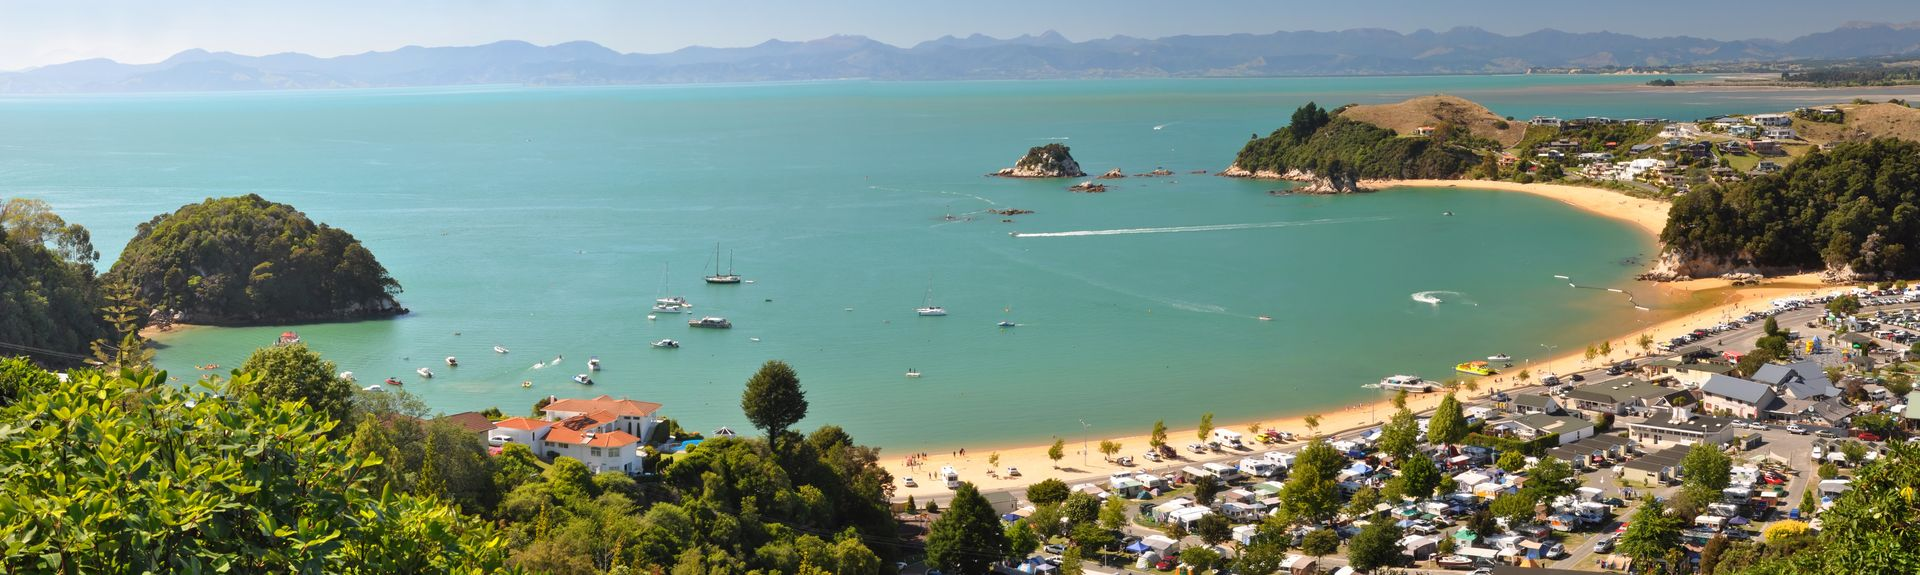 Kaiteriteri, Tasman, New Zealand